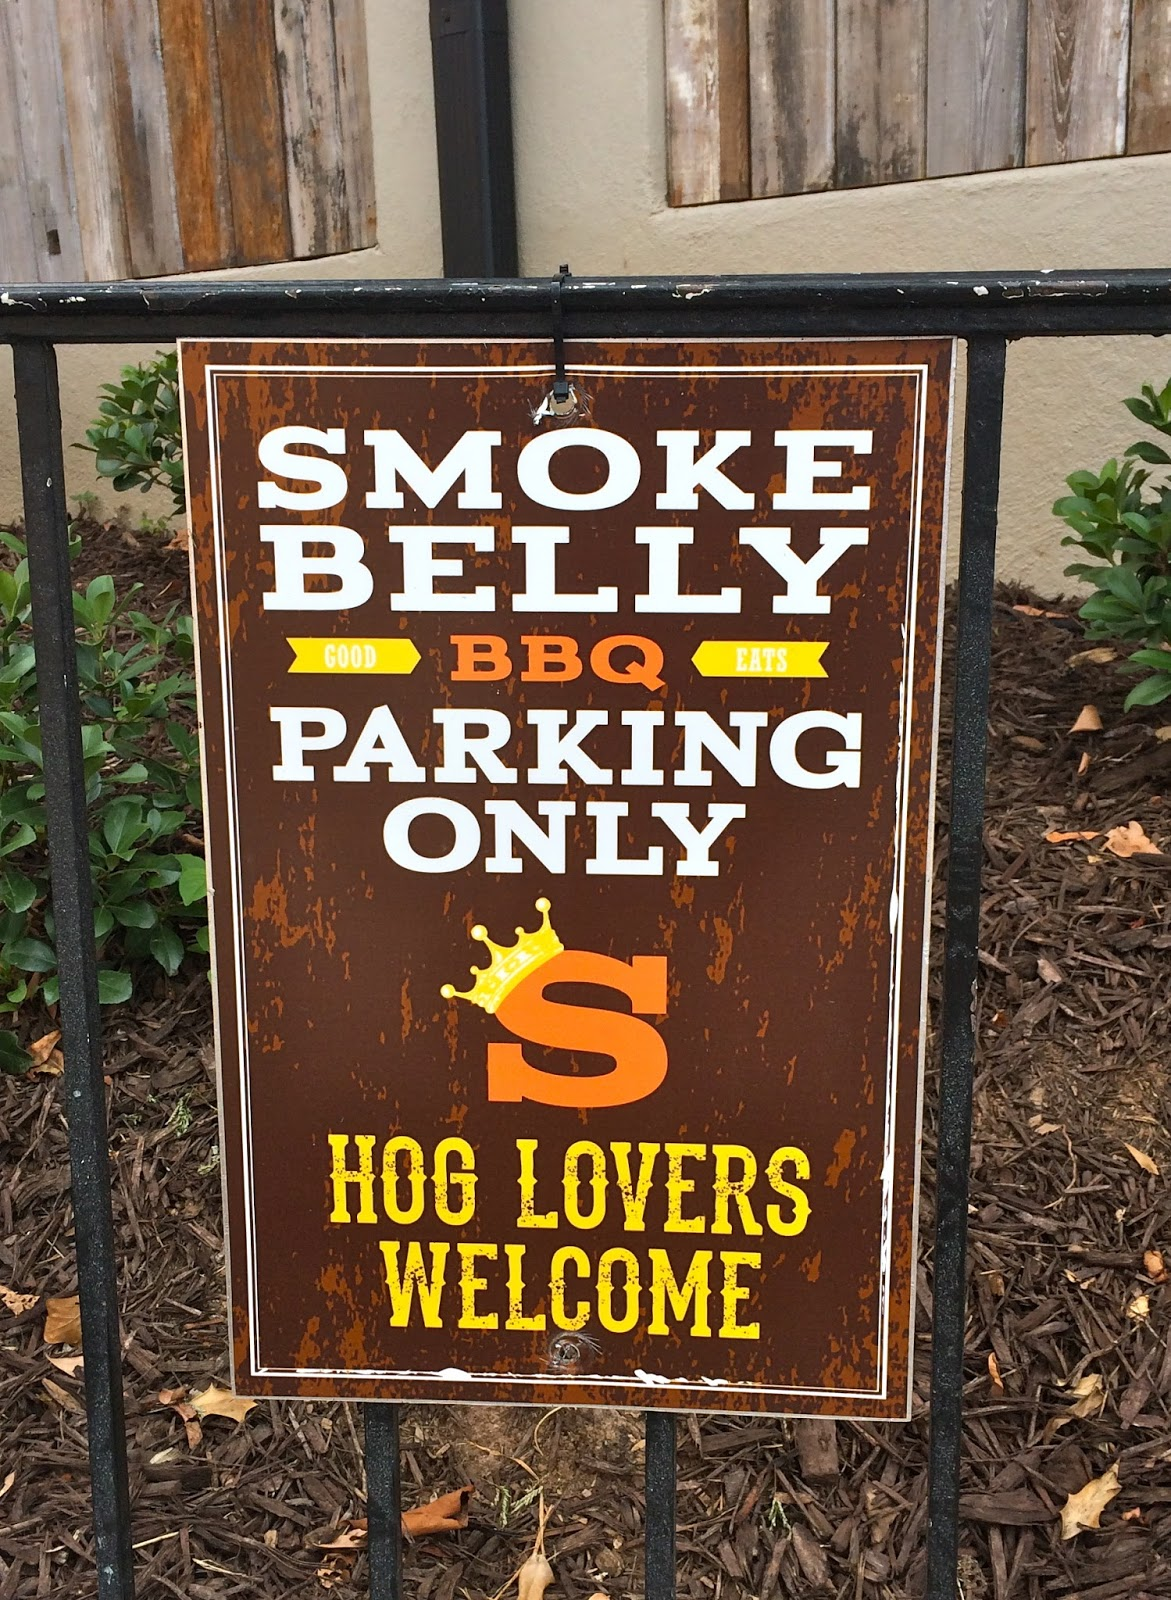 Calling all hog lovers!! Atlanta's Smokebelly BBQ has some great family-friendly offerings!